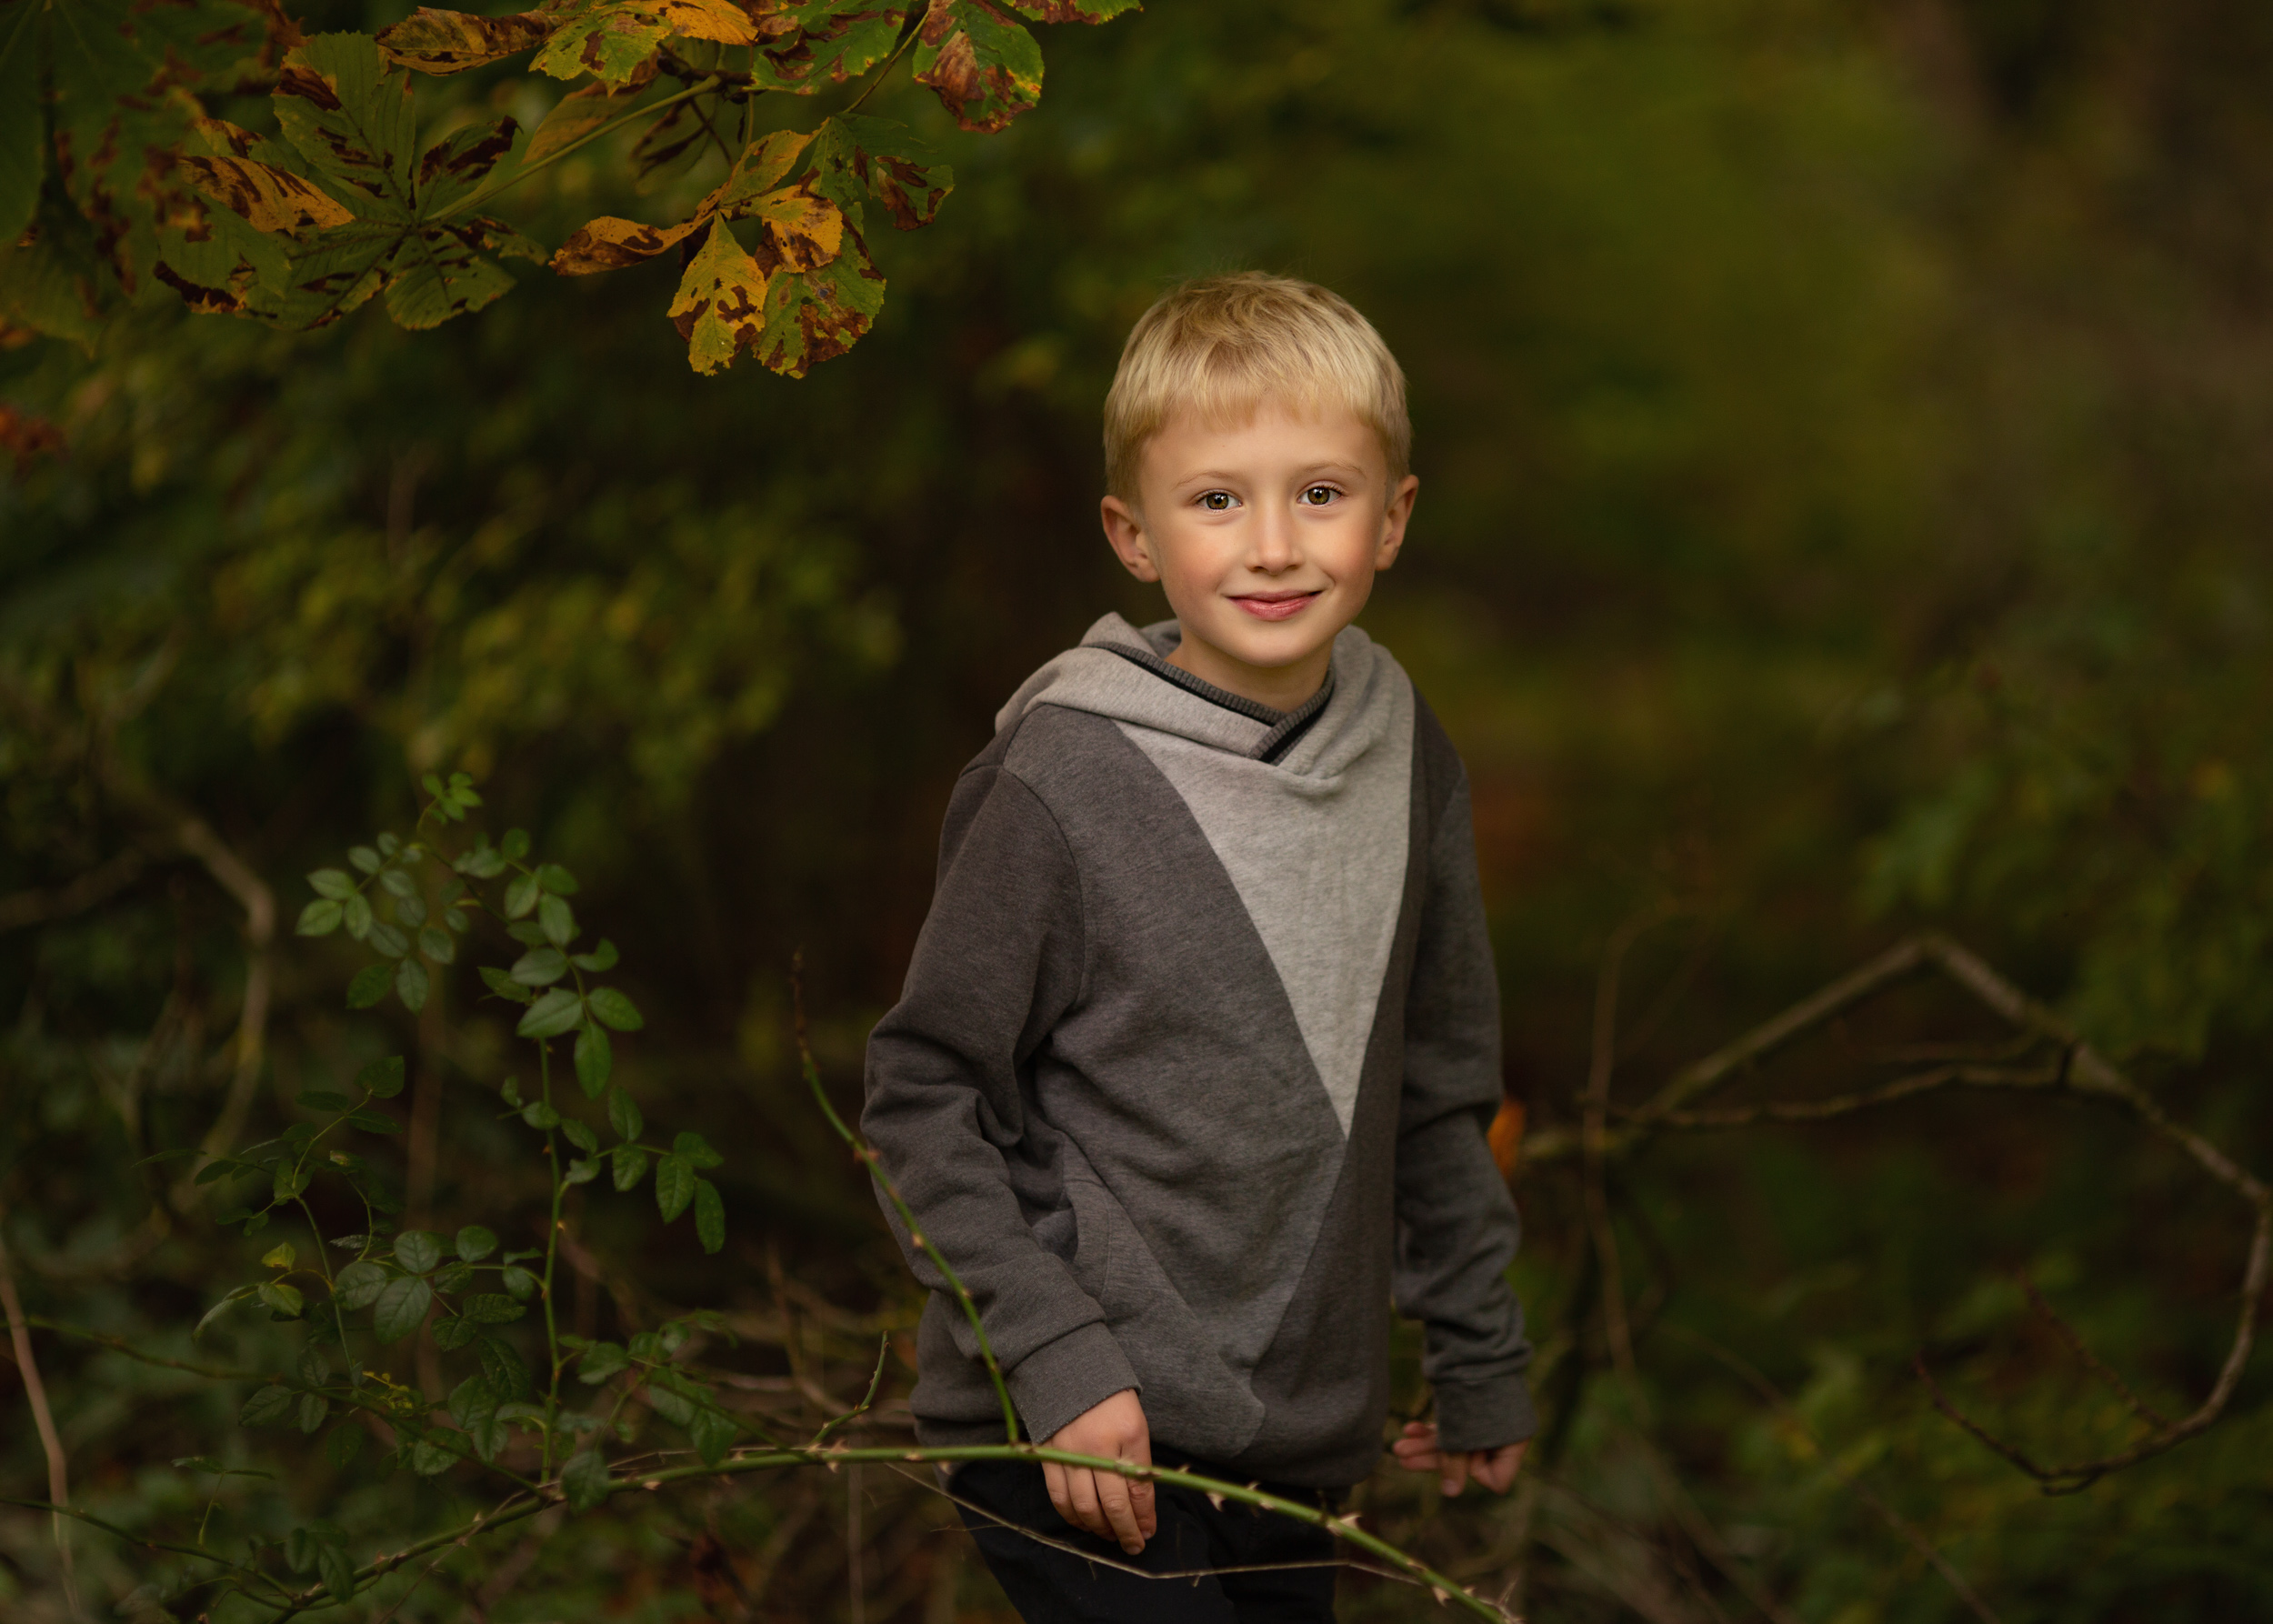 A little boy sneaking through trees at an outdoor family portrait with autumn tones in Nantwich, Cheshire